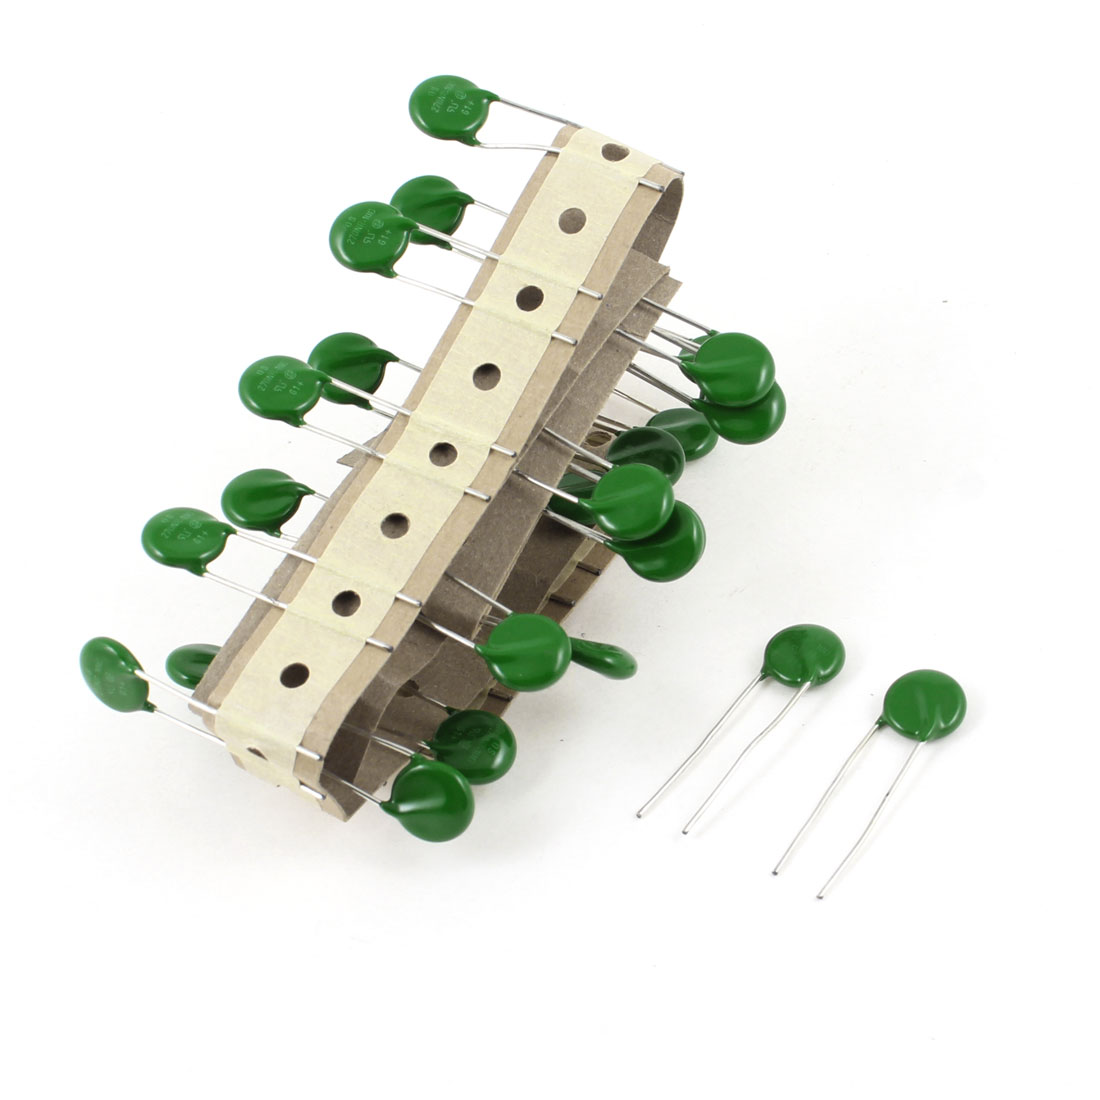 30 Pcs 6mm Lead Spacing Radial Lead Voltage Dependent Resistors